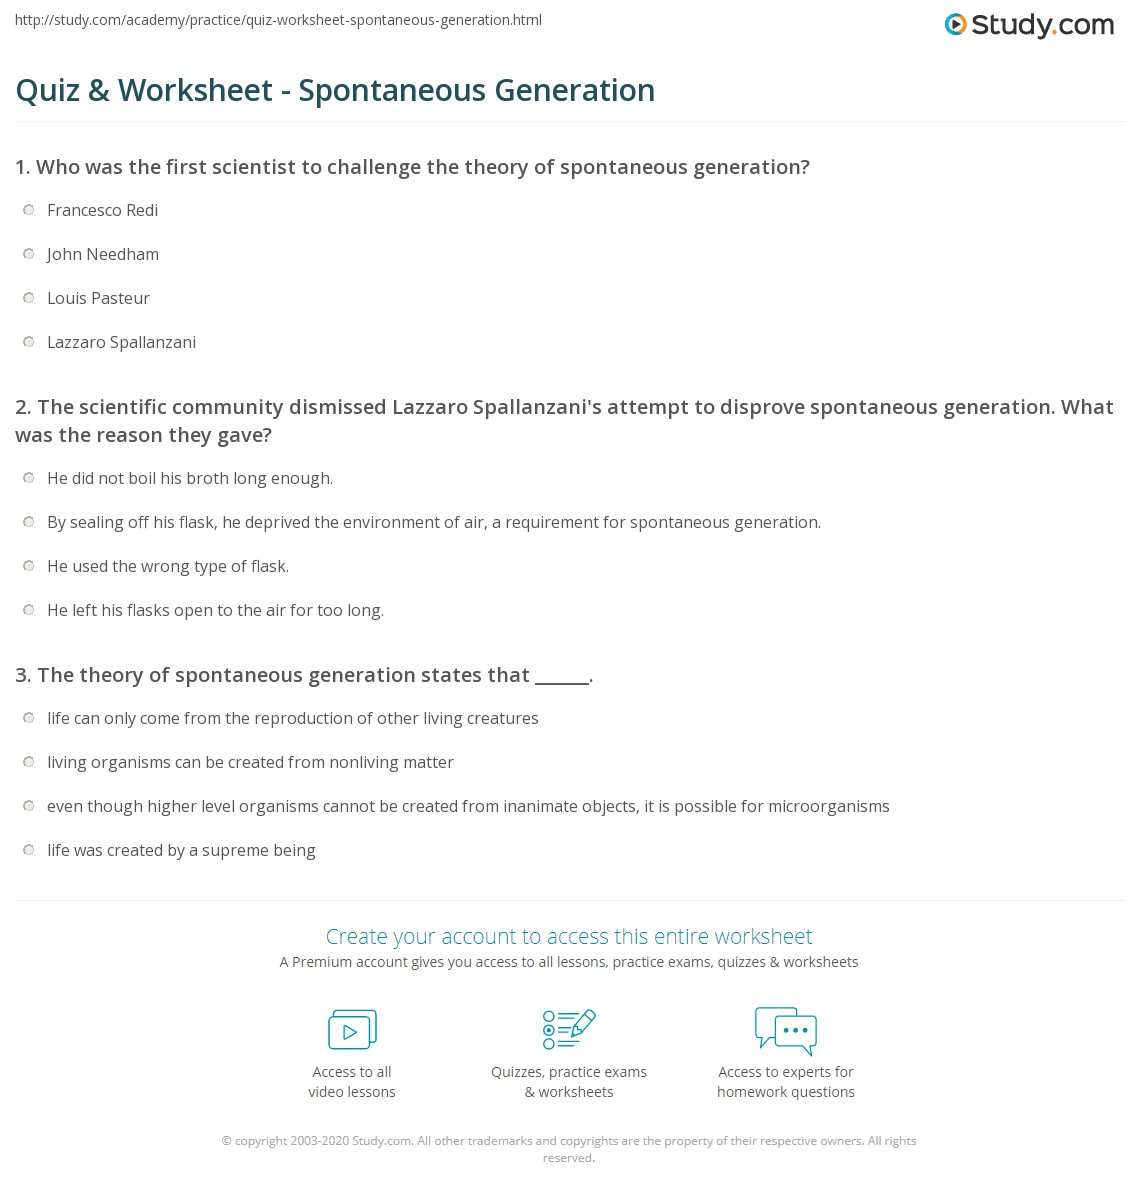 Aldiablosus  Ravishing Quiz Amp Worksheet  Spontaneous Generation  Studycom With Hot Print Spontaneous Generation Definition Theory Amp Examples Worksheet With Delightful Grammatically Correct Sentences Worksheets Also Measure Worksheet In Addition Printable Multiplying Decimals Worksheet And Decimal Worksheets For Grade  As Well As Grammar Subject Verb Agreement Worksheet Additionally Grade One Addition Worksheets From Studycom With Aldiablosus  Hot Quiz Amp Worksheet  Spontaneous Generation  Studycom With Delightful Print Spontaneous Generation Definition Theory Amp Examples Worksheet And Ravishing Grammatically Correct Sentences Worksheets Also Measure Worksheet In Addition Printable Multiplying Decimals Worksheet From Studycom